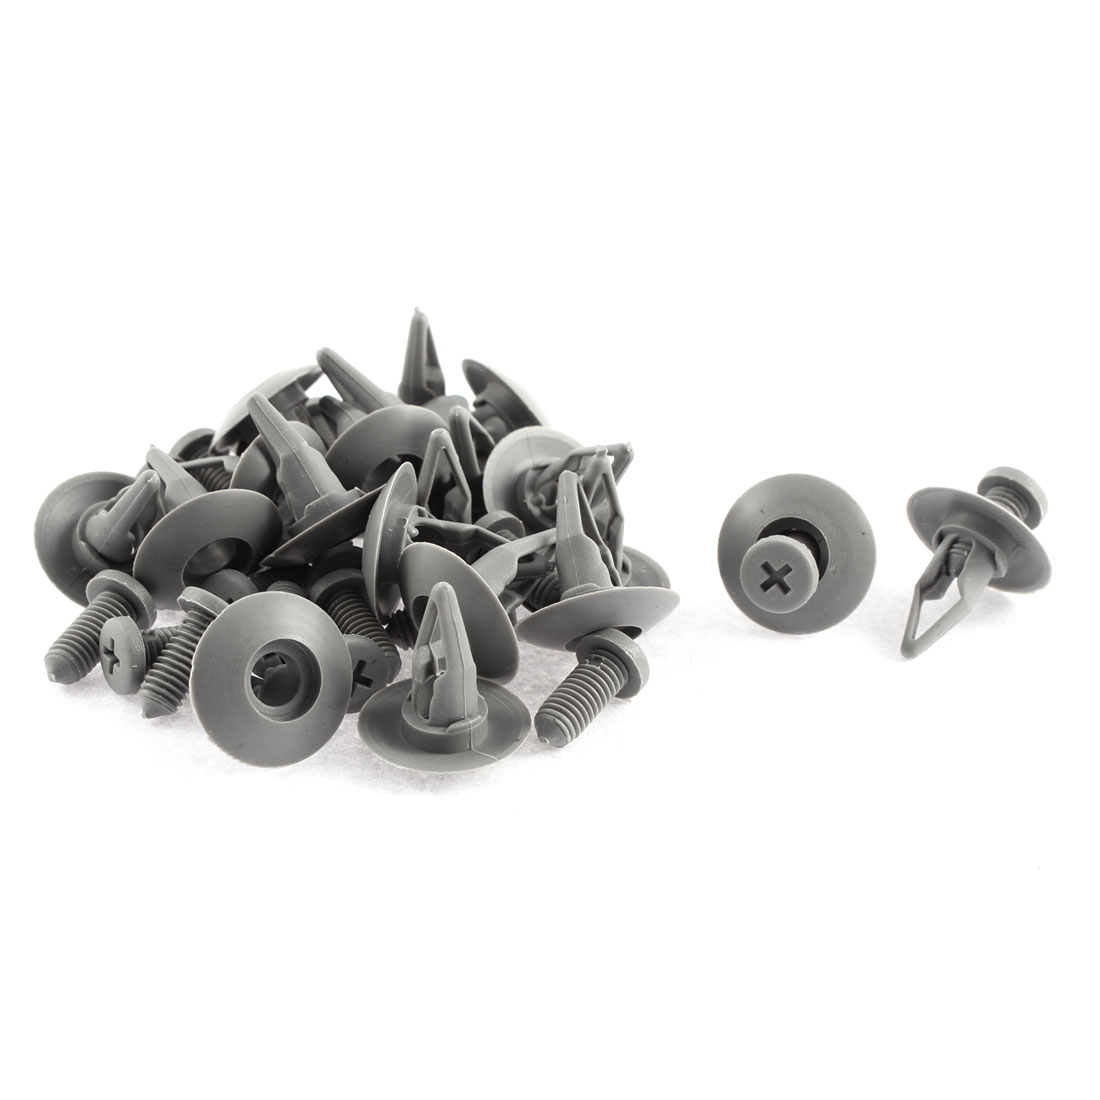 20 Pcs 20mm x 8mm Gray Plastic Push-Type Fastener Retainer Clips